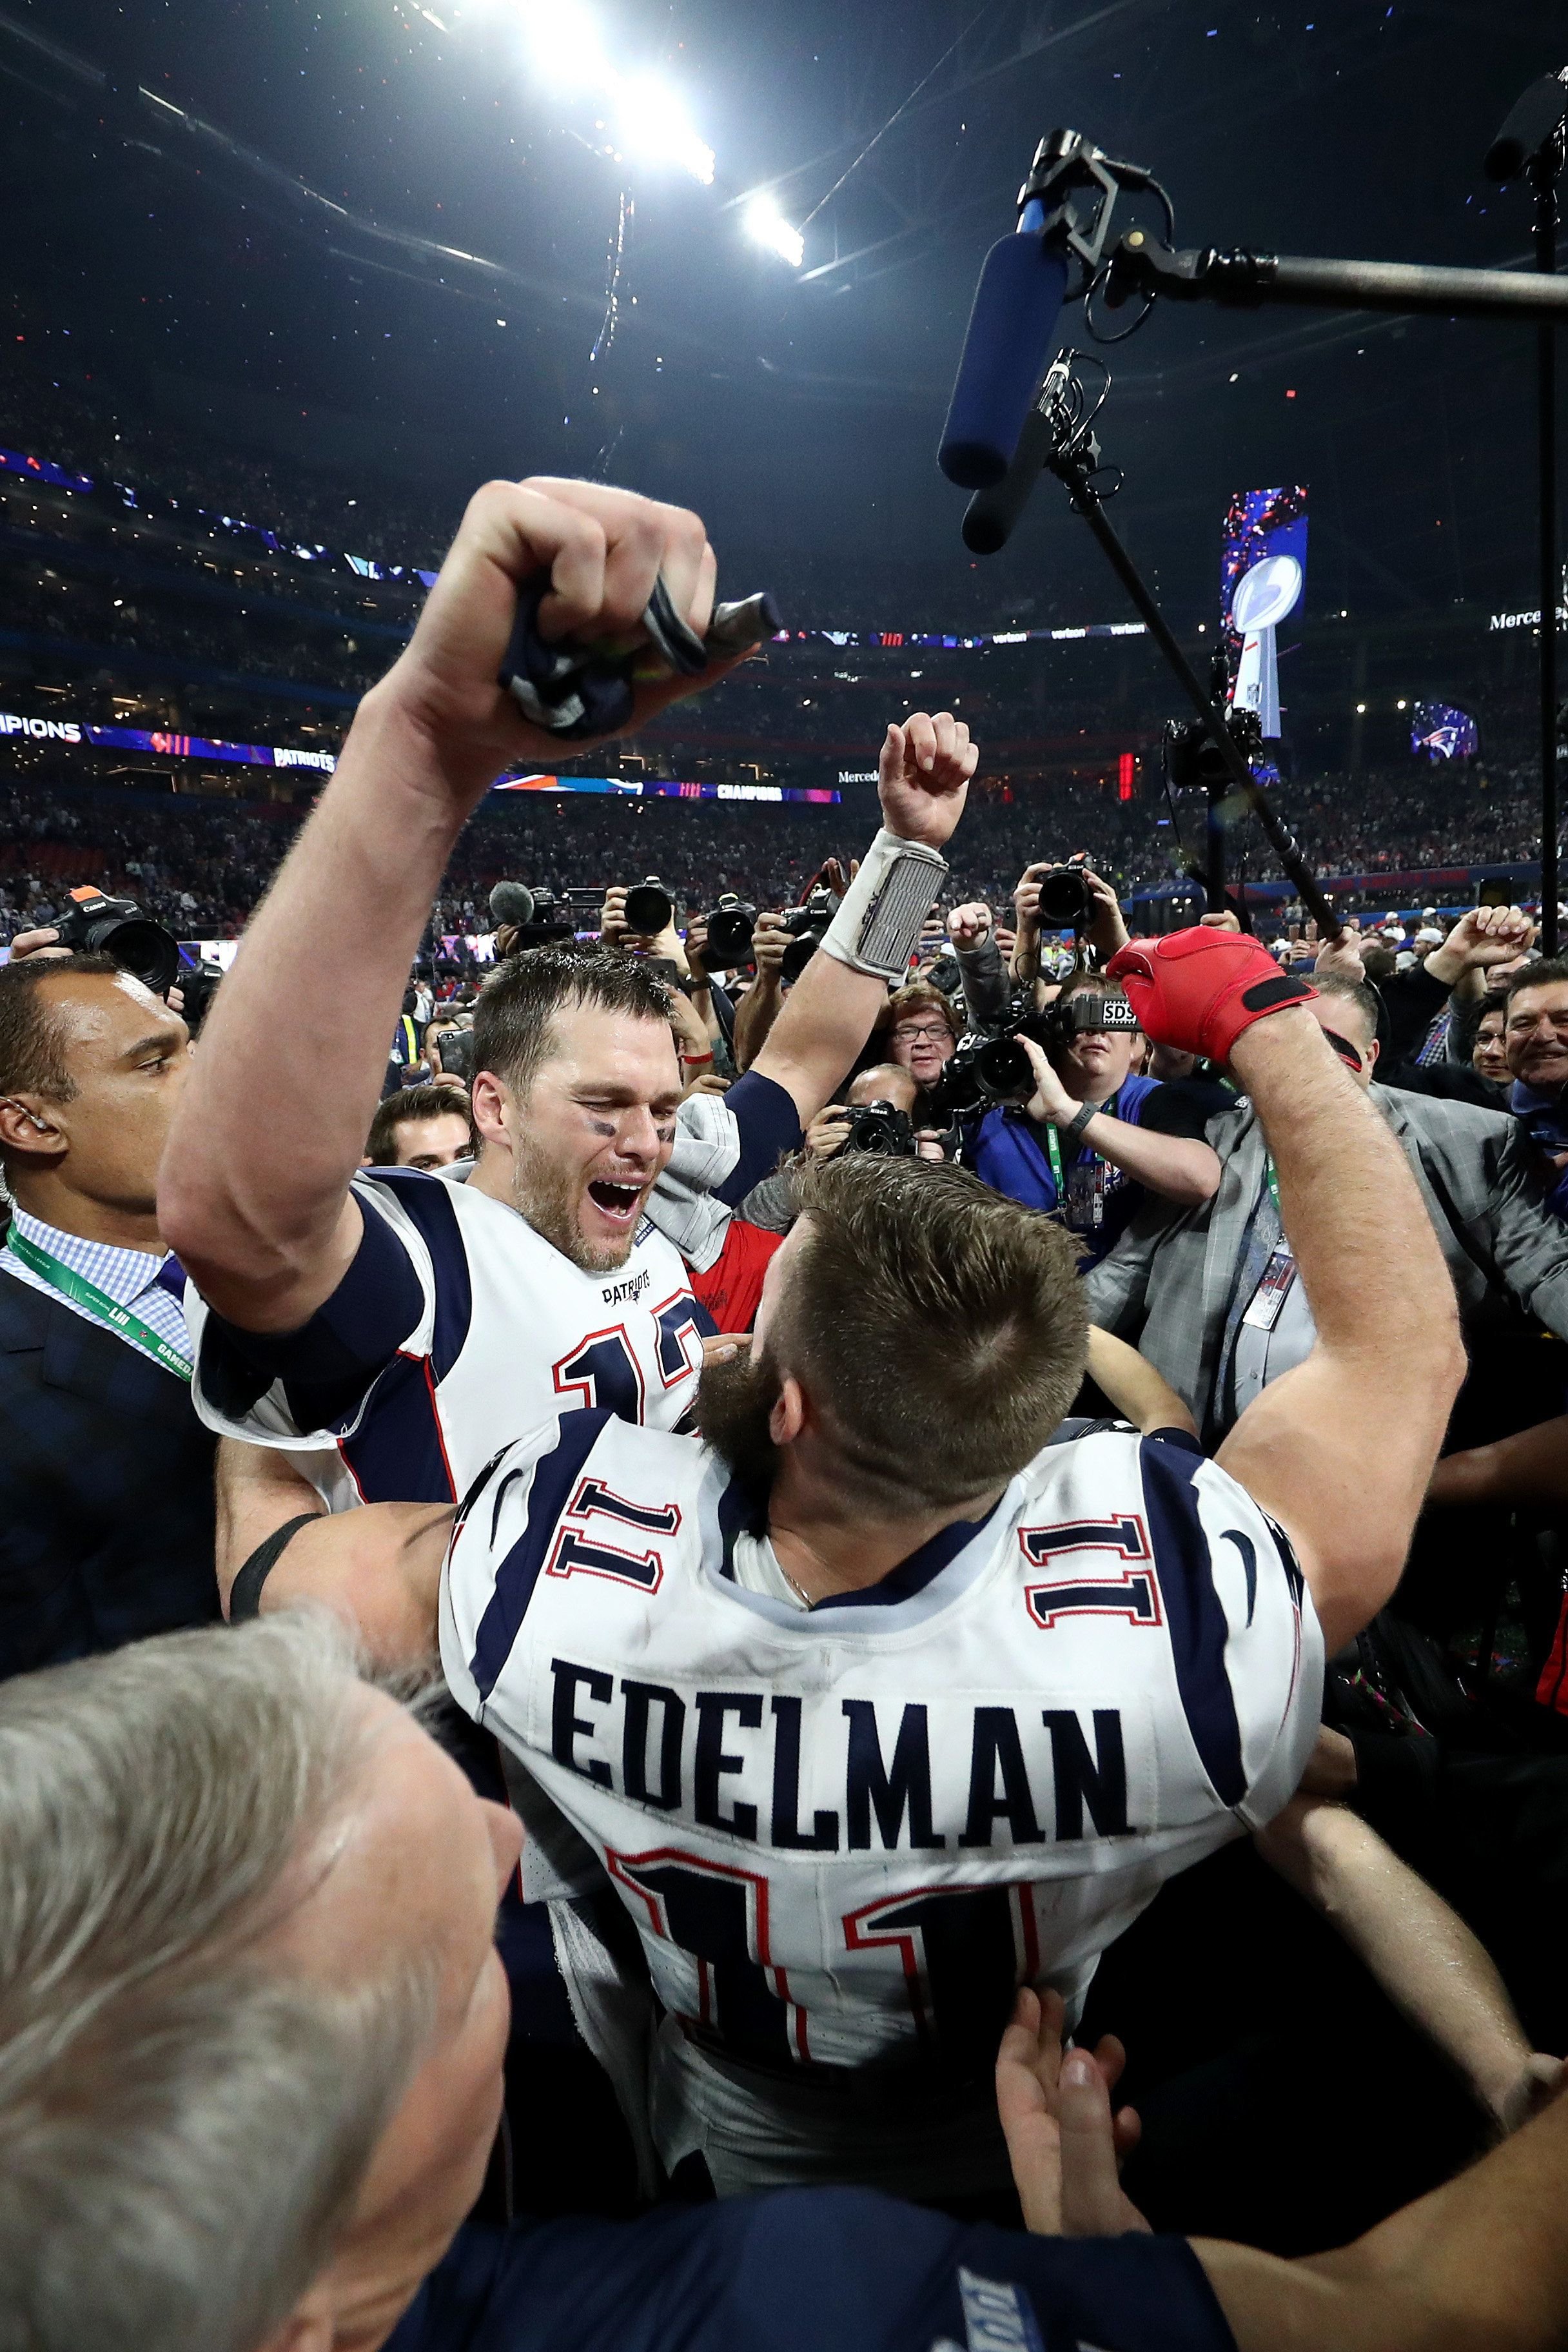 ATLANTA, GEORGIA - FEBRUARY 03:  Tom Brady #12 of the New England Patriots and Julian Edelman #11 celebrate their teams 13-3 win over the Los Angeles Rams during Super Bowl LIII at Mercedes-Benz Stadium on February 03, 2019 in Atlanta, Georgia. (Photo by Al Bello/Getty Images)